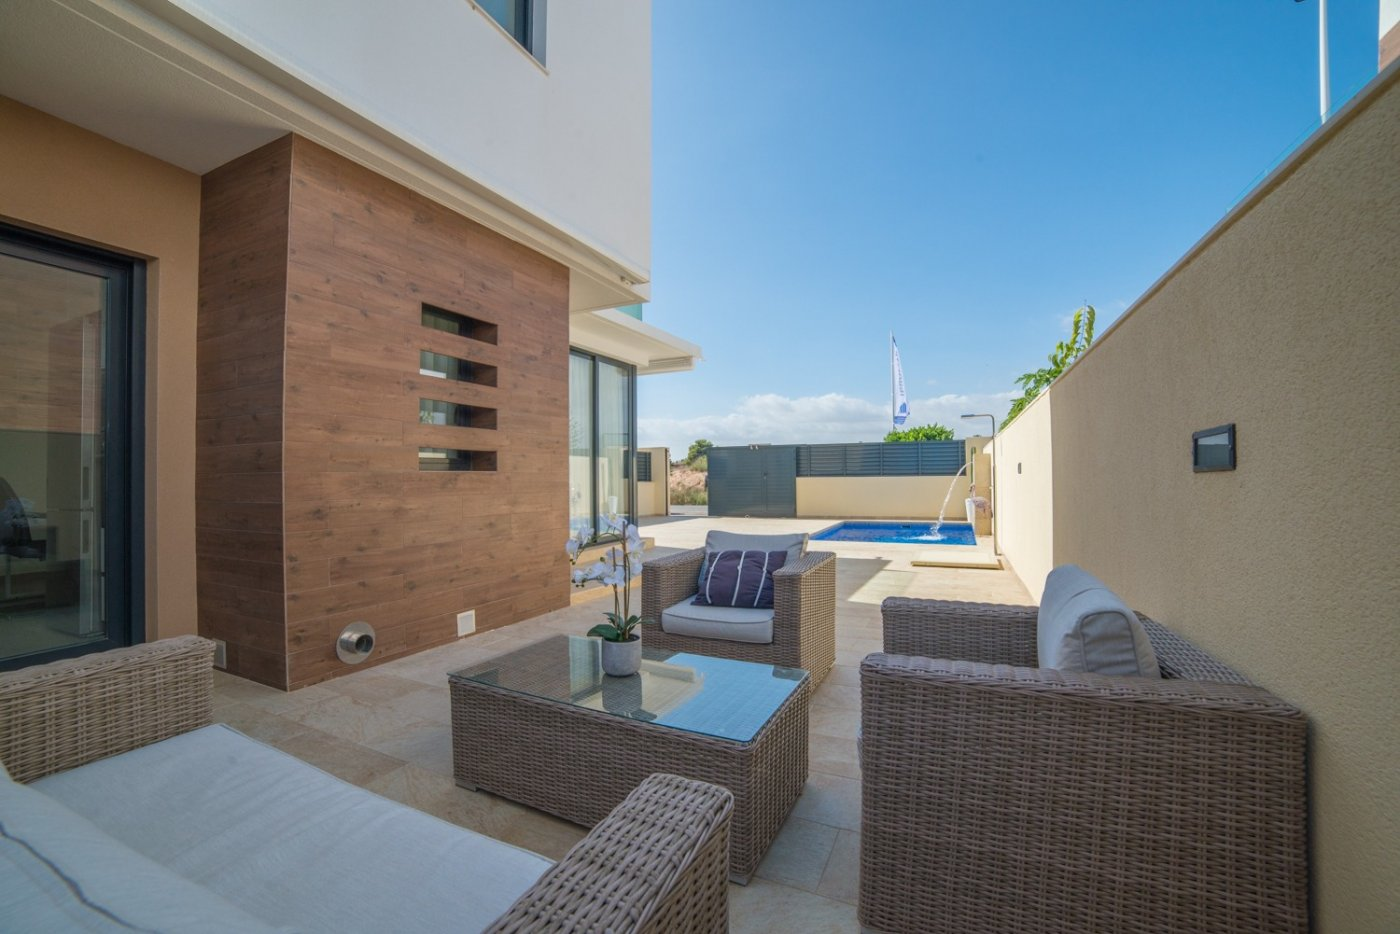 Gallery Image 14 of Premium semi-detached villa with swimming pool at a very competitive price